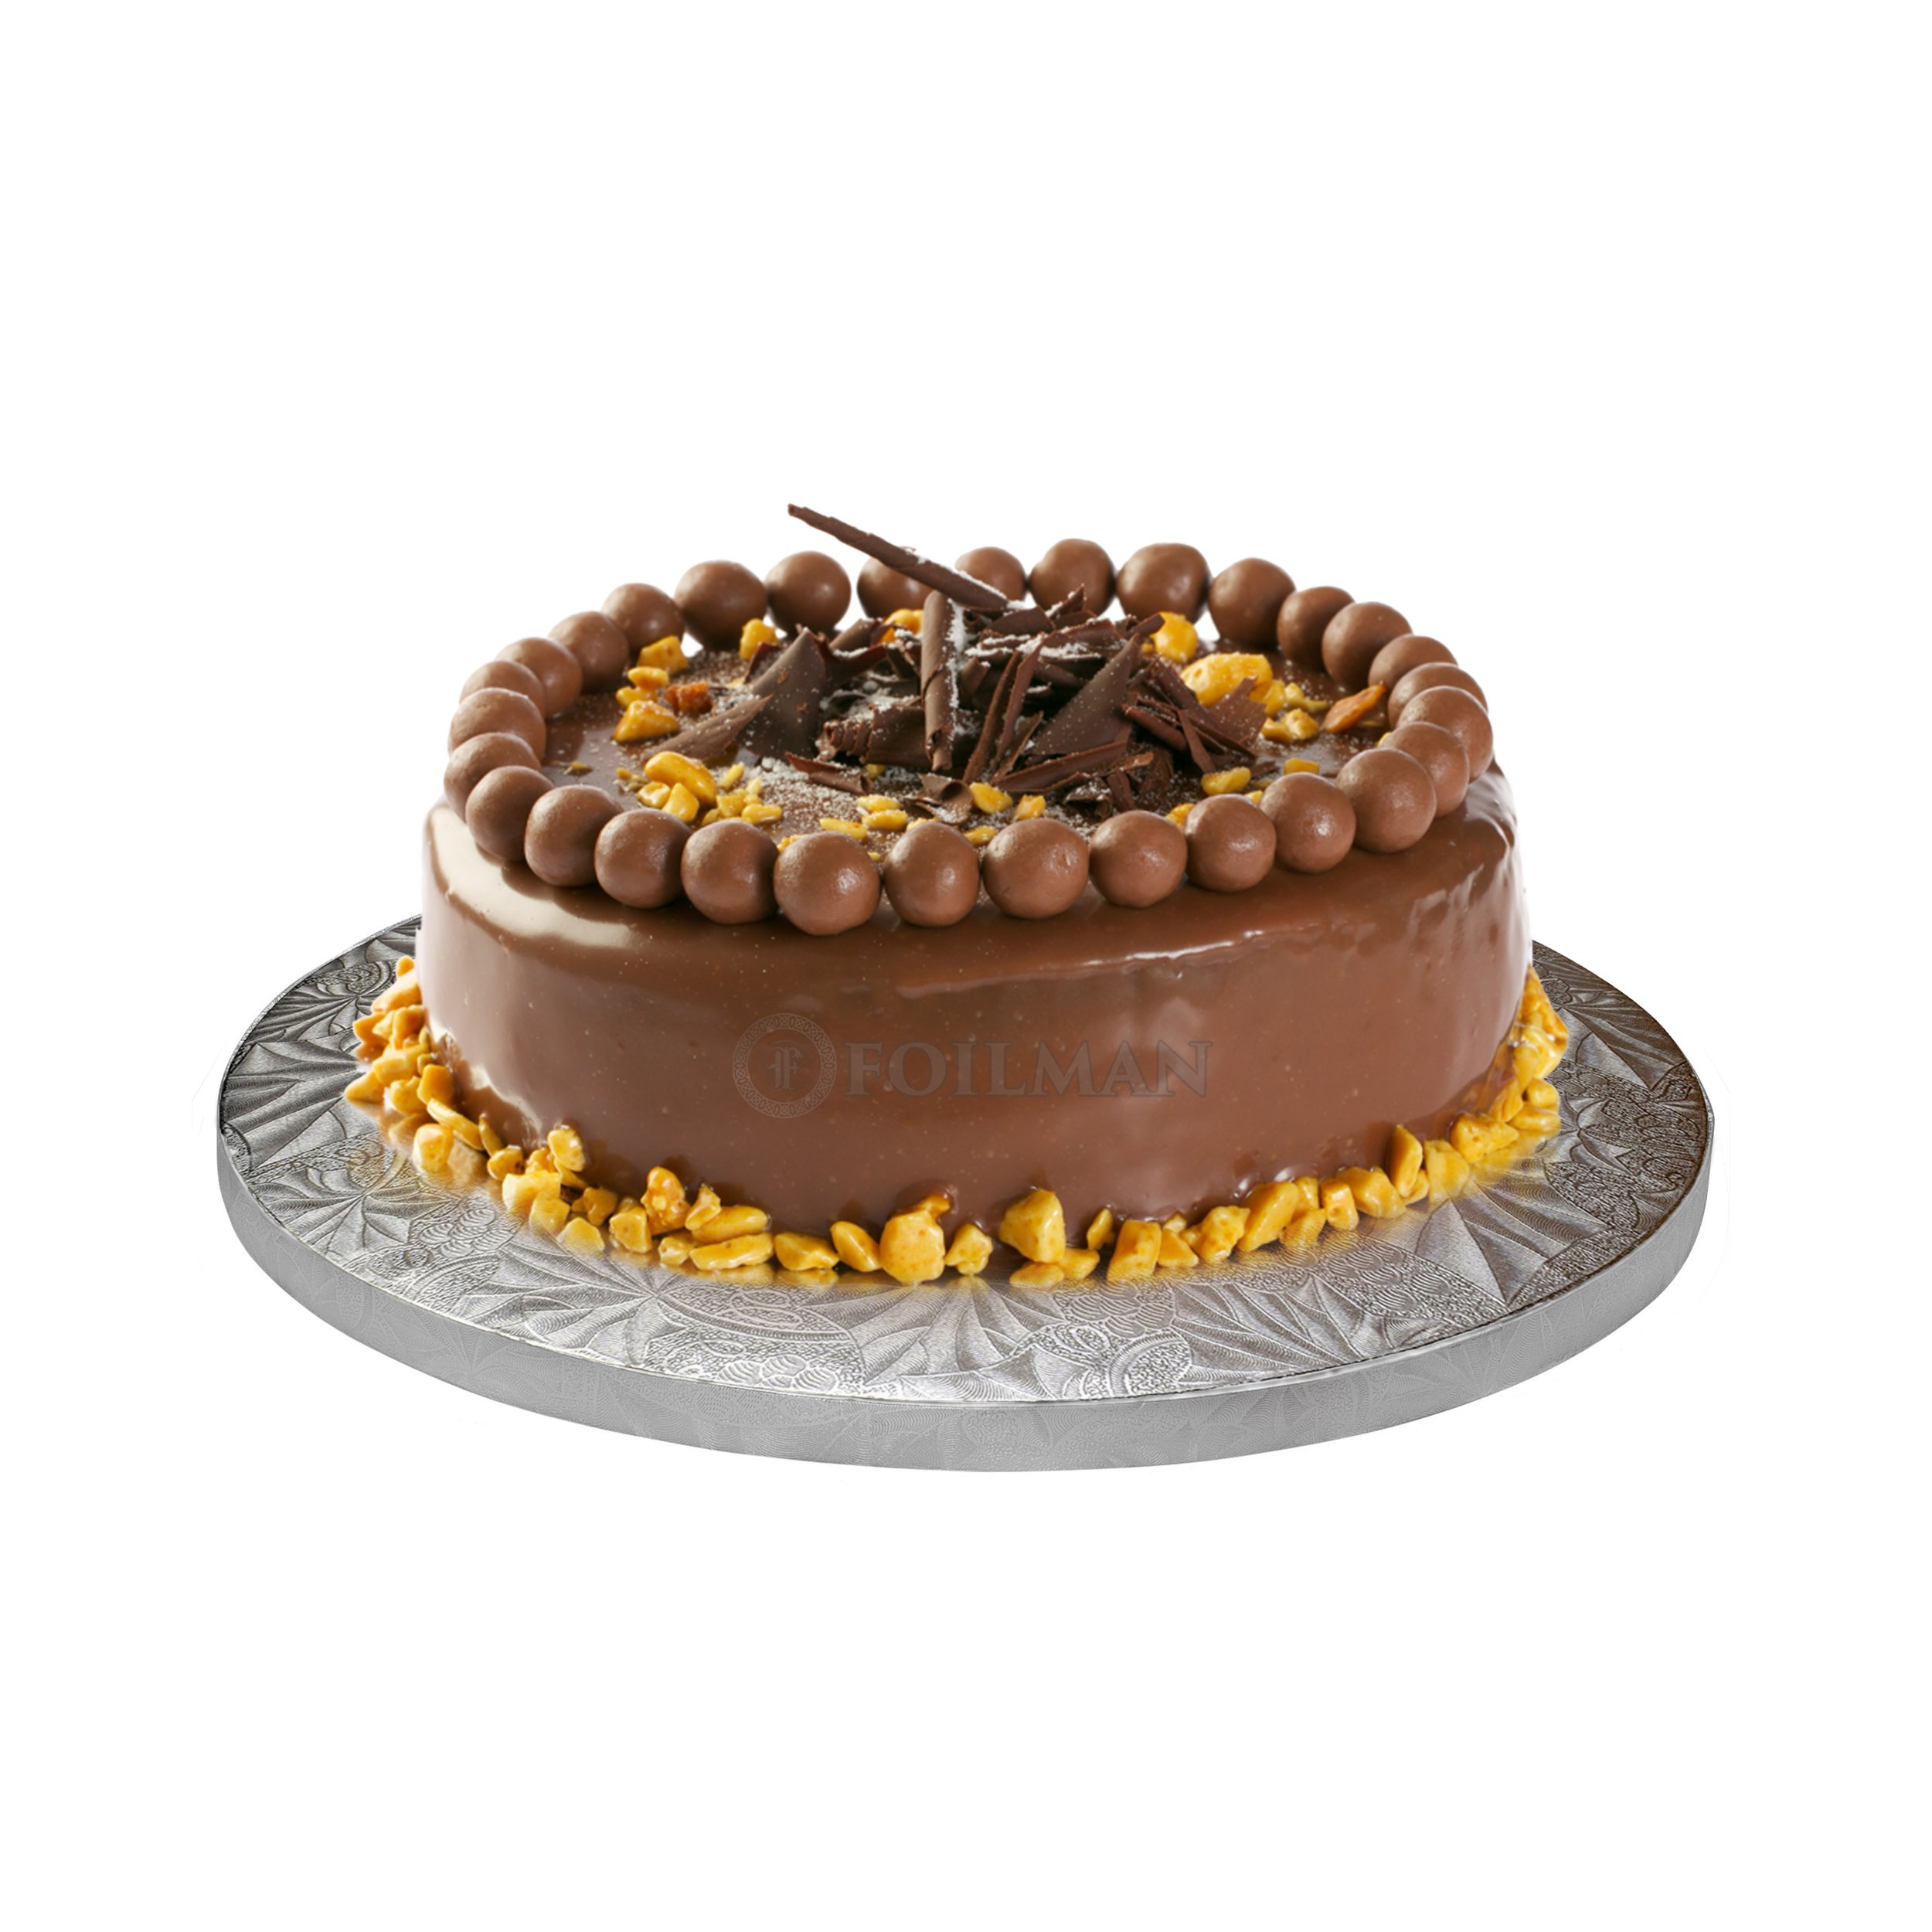 """12"""" Inch Round Drum Cake Boars for Decorating Cakes ½ Inch Thick - with Coated With Grape Embossed Foil – Covers Top & Sides of Bakes - Sturdy, Elegant & Lightweight Boards (Pack of 12)"""